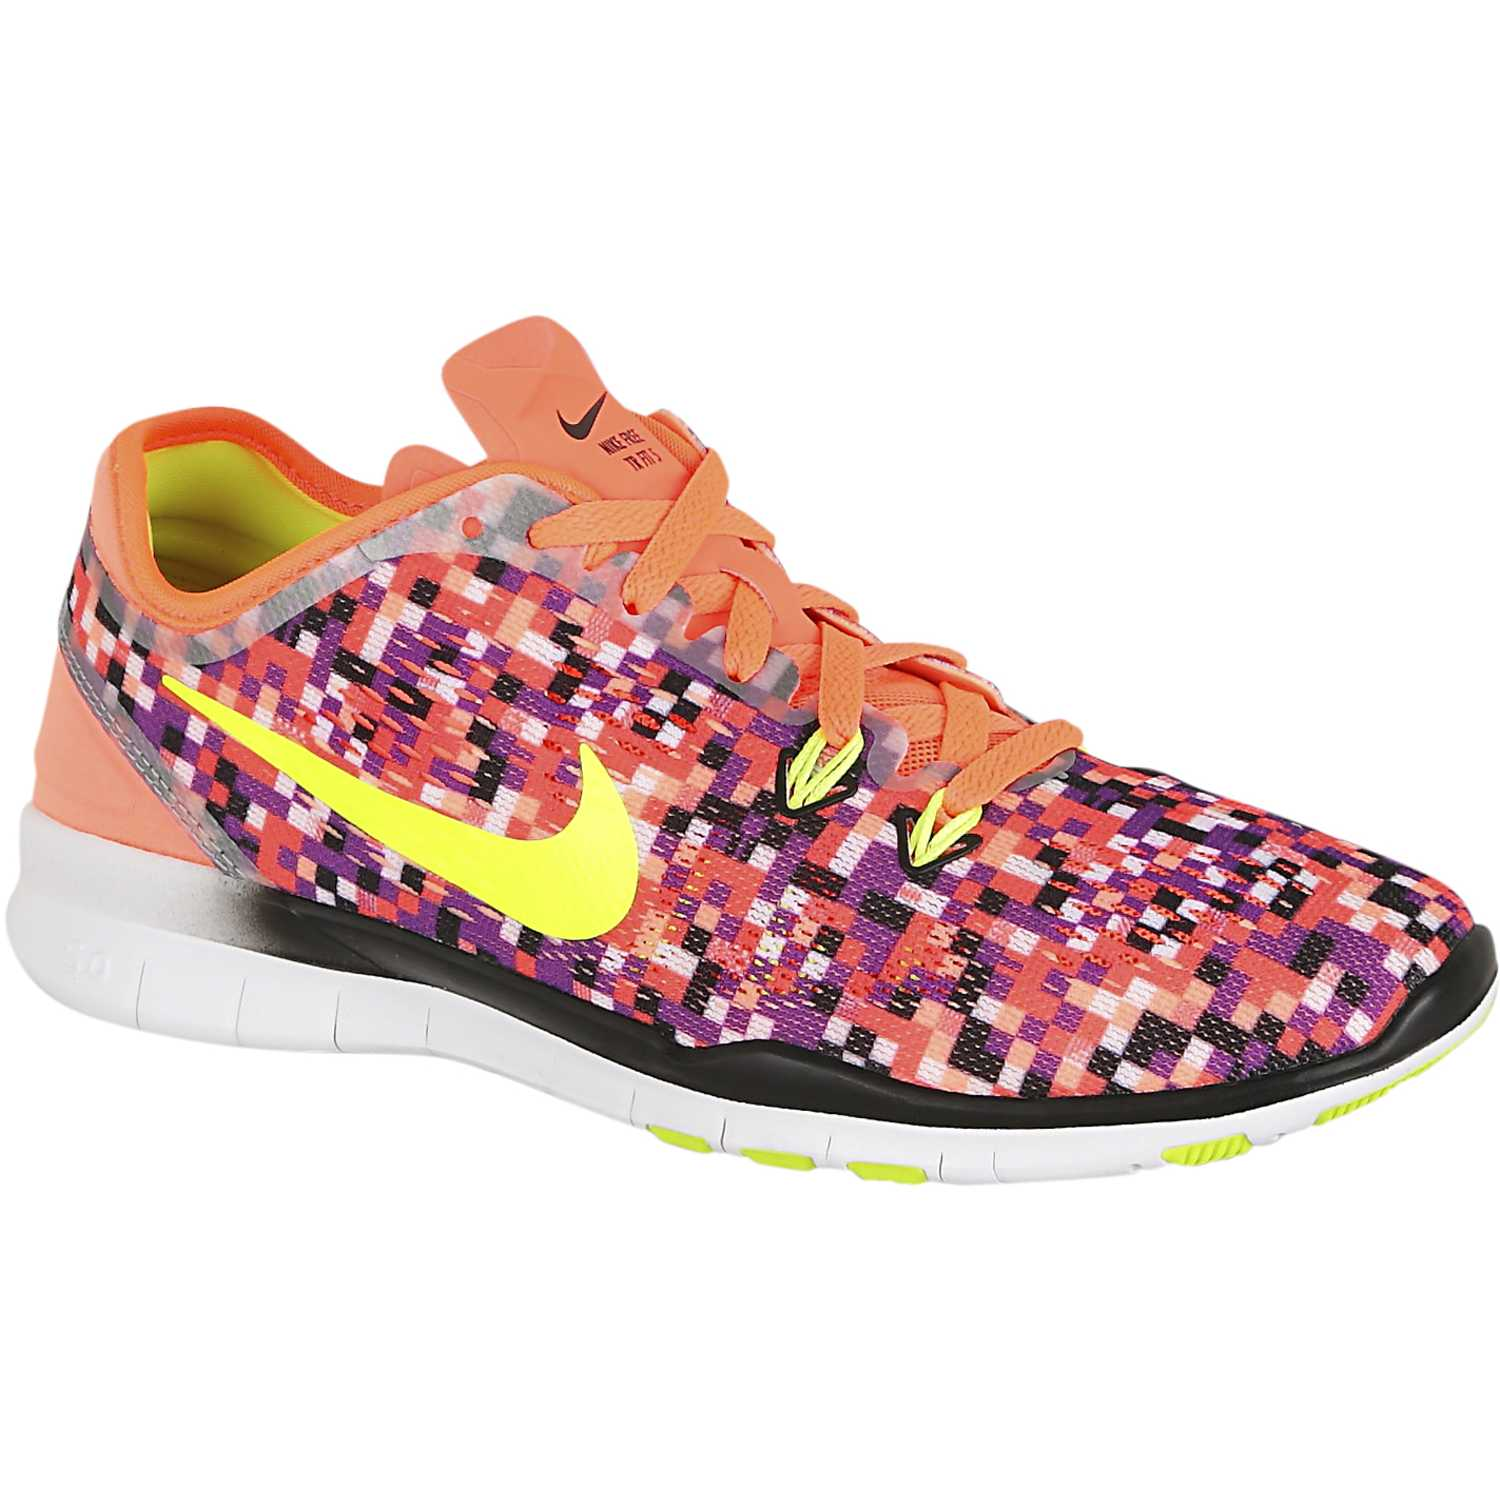 on sale c60e5 ee3ab Zapatilla de Mujer Nike varios wmns free 5.0 tr fit 5 prt